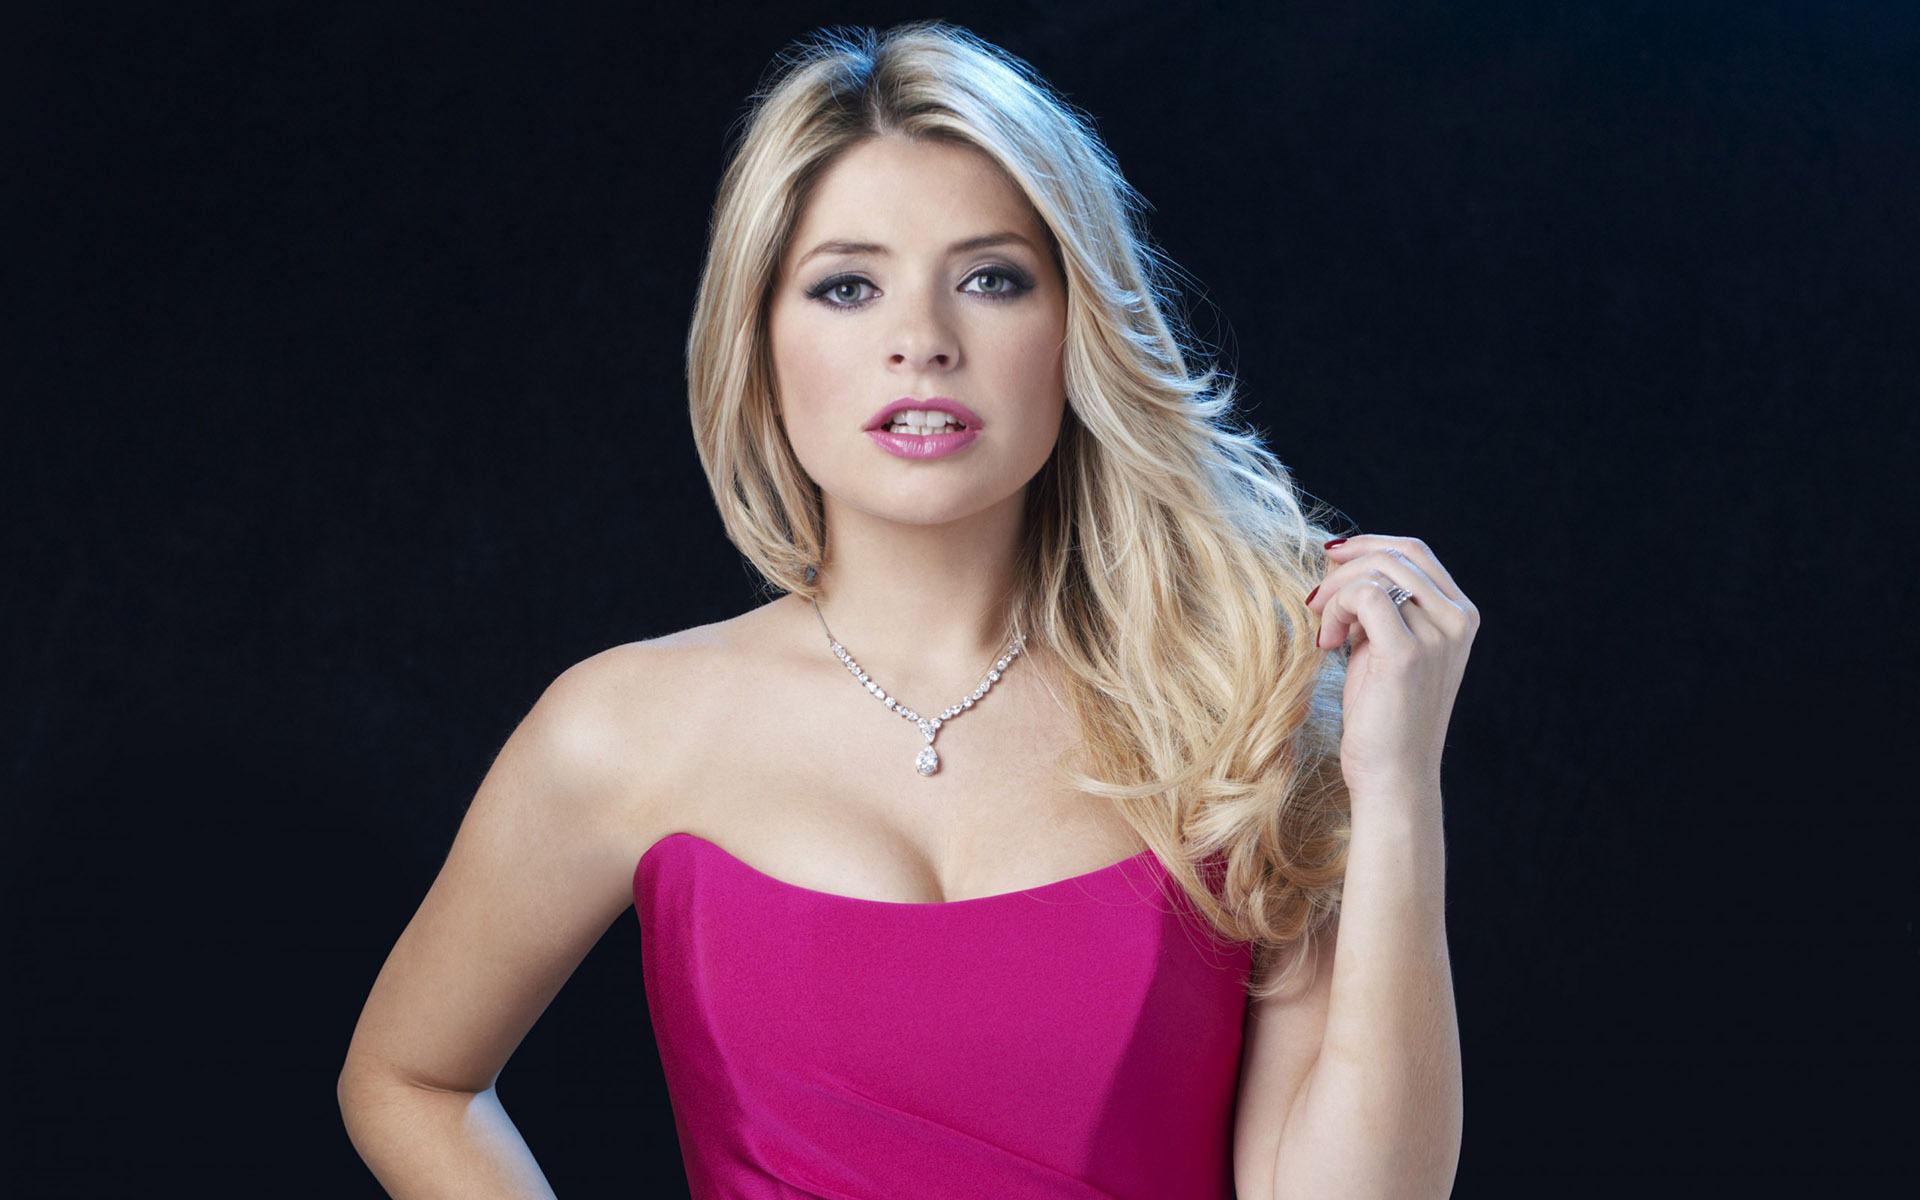 Custom All Stars >> Beautiful Holly Willoughby Wallpaper | Full HD Pictures